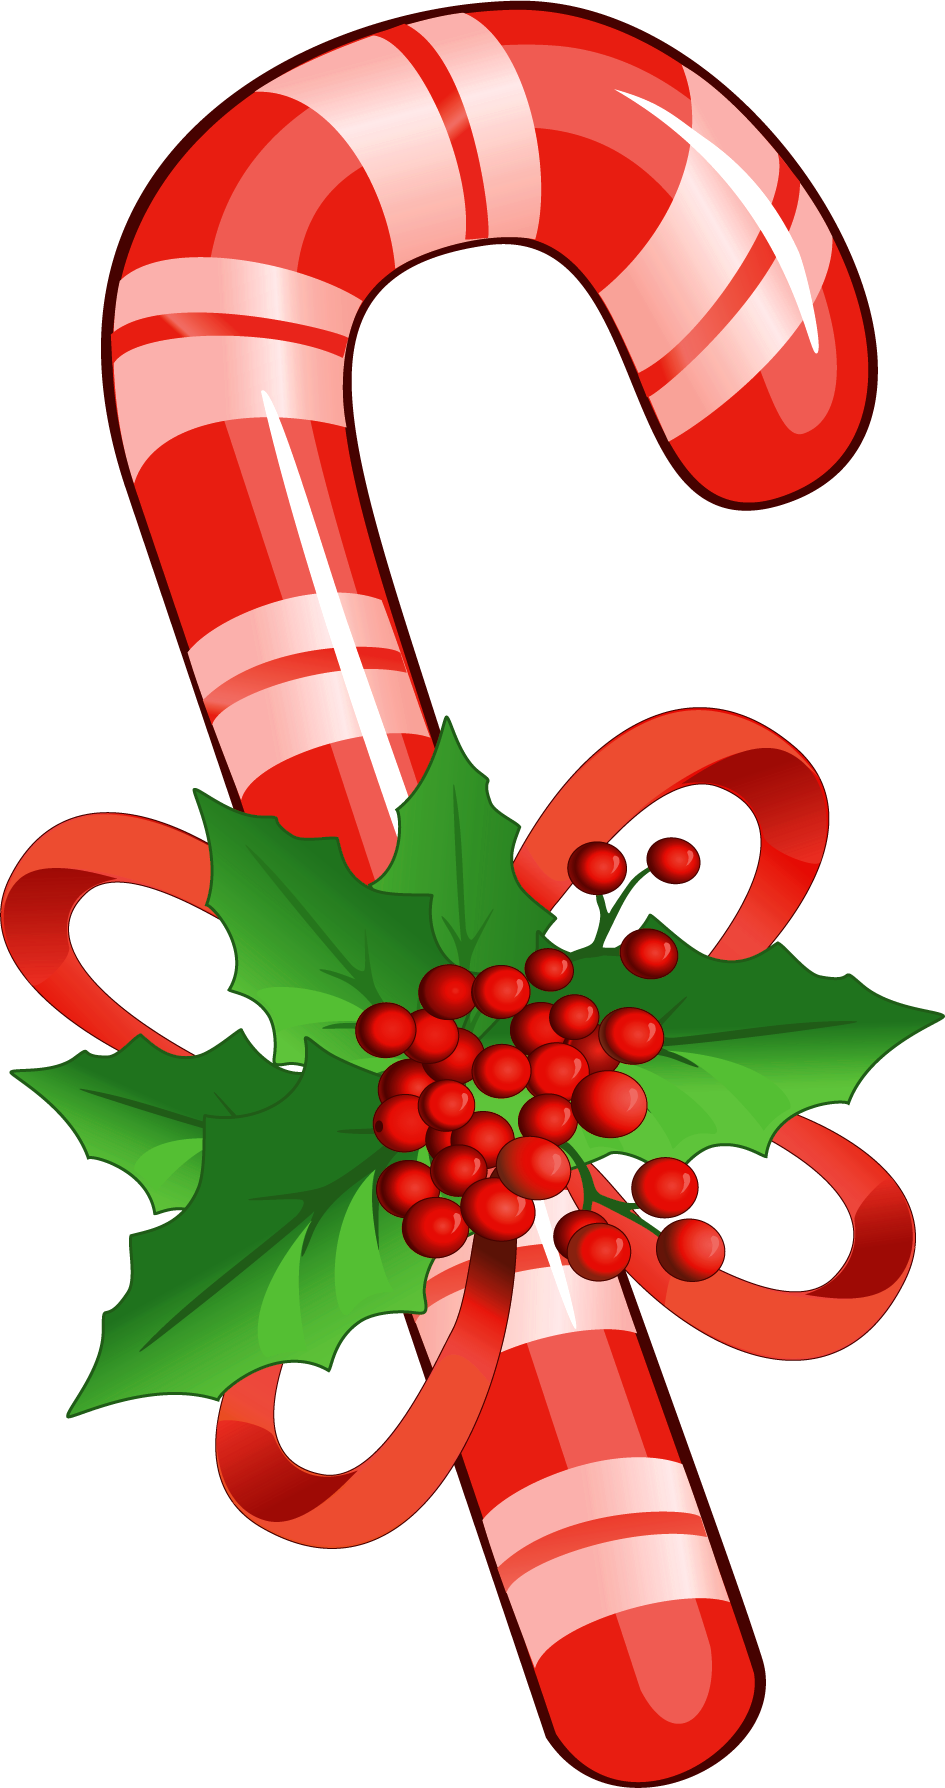 Candy Cane clipart transparent background Transparent PNG background free Christmas